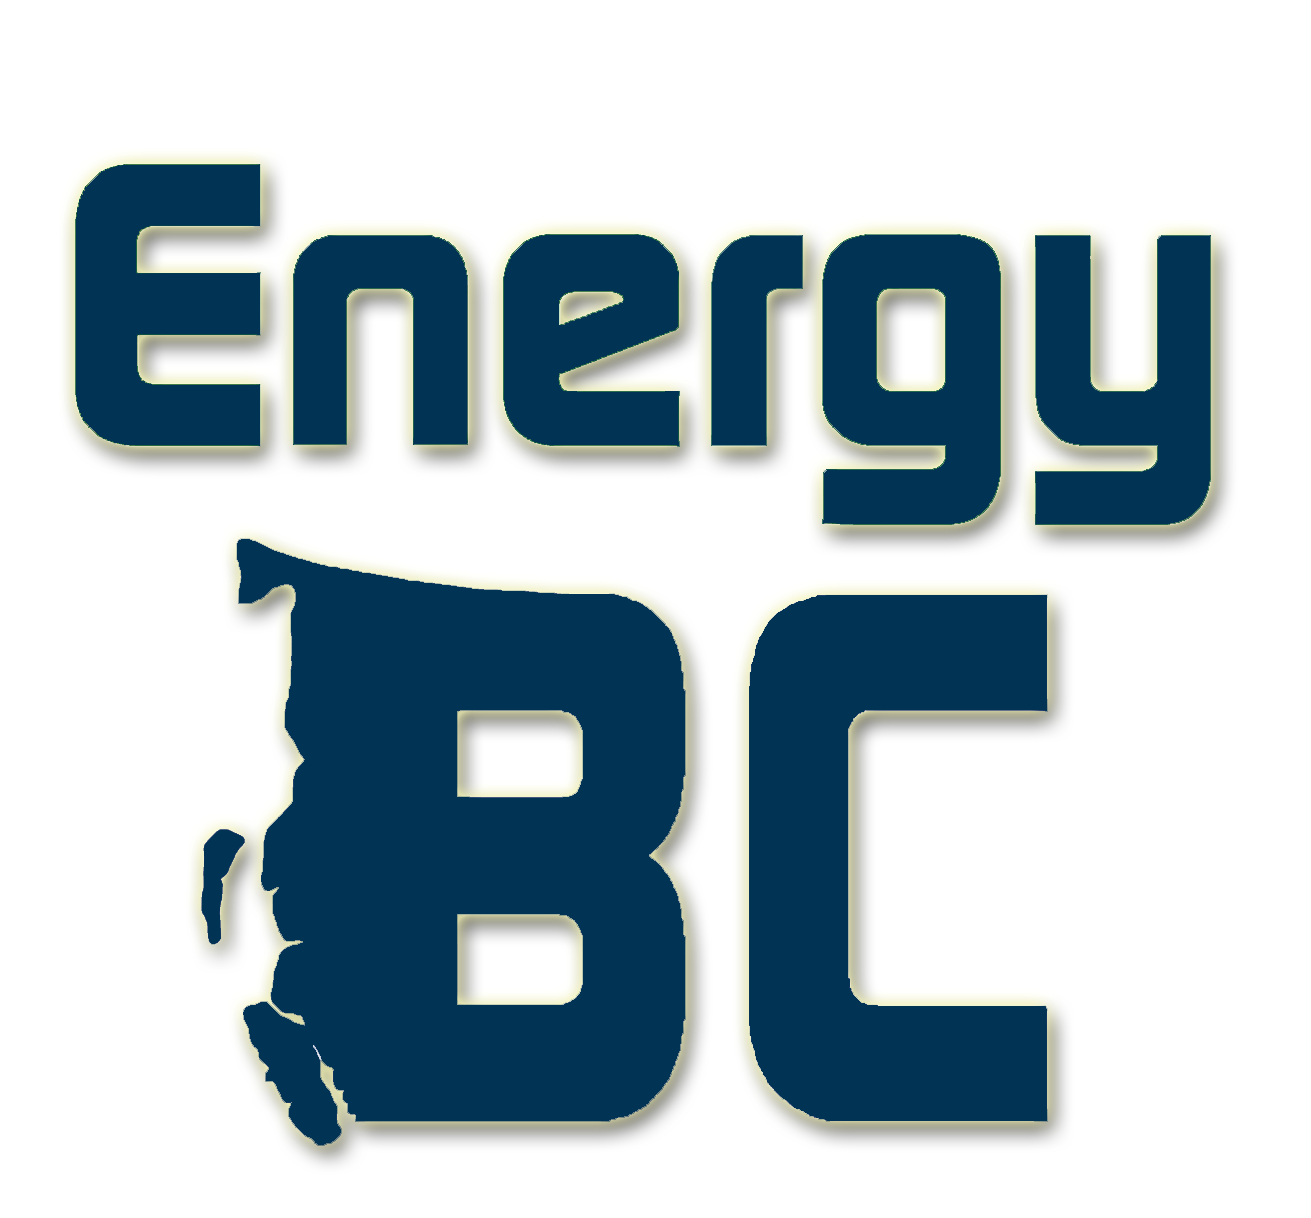 Electricity Generating Stations Map - Energy British Columbia